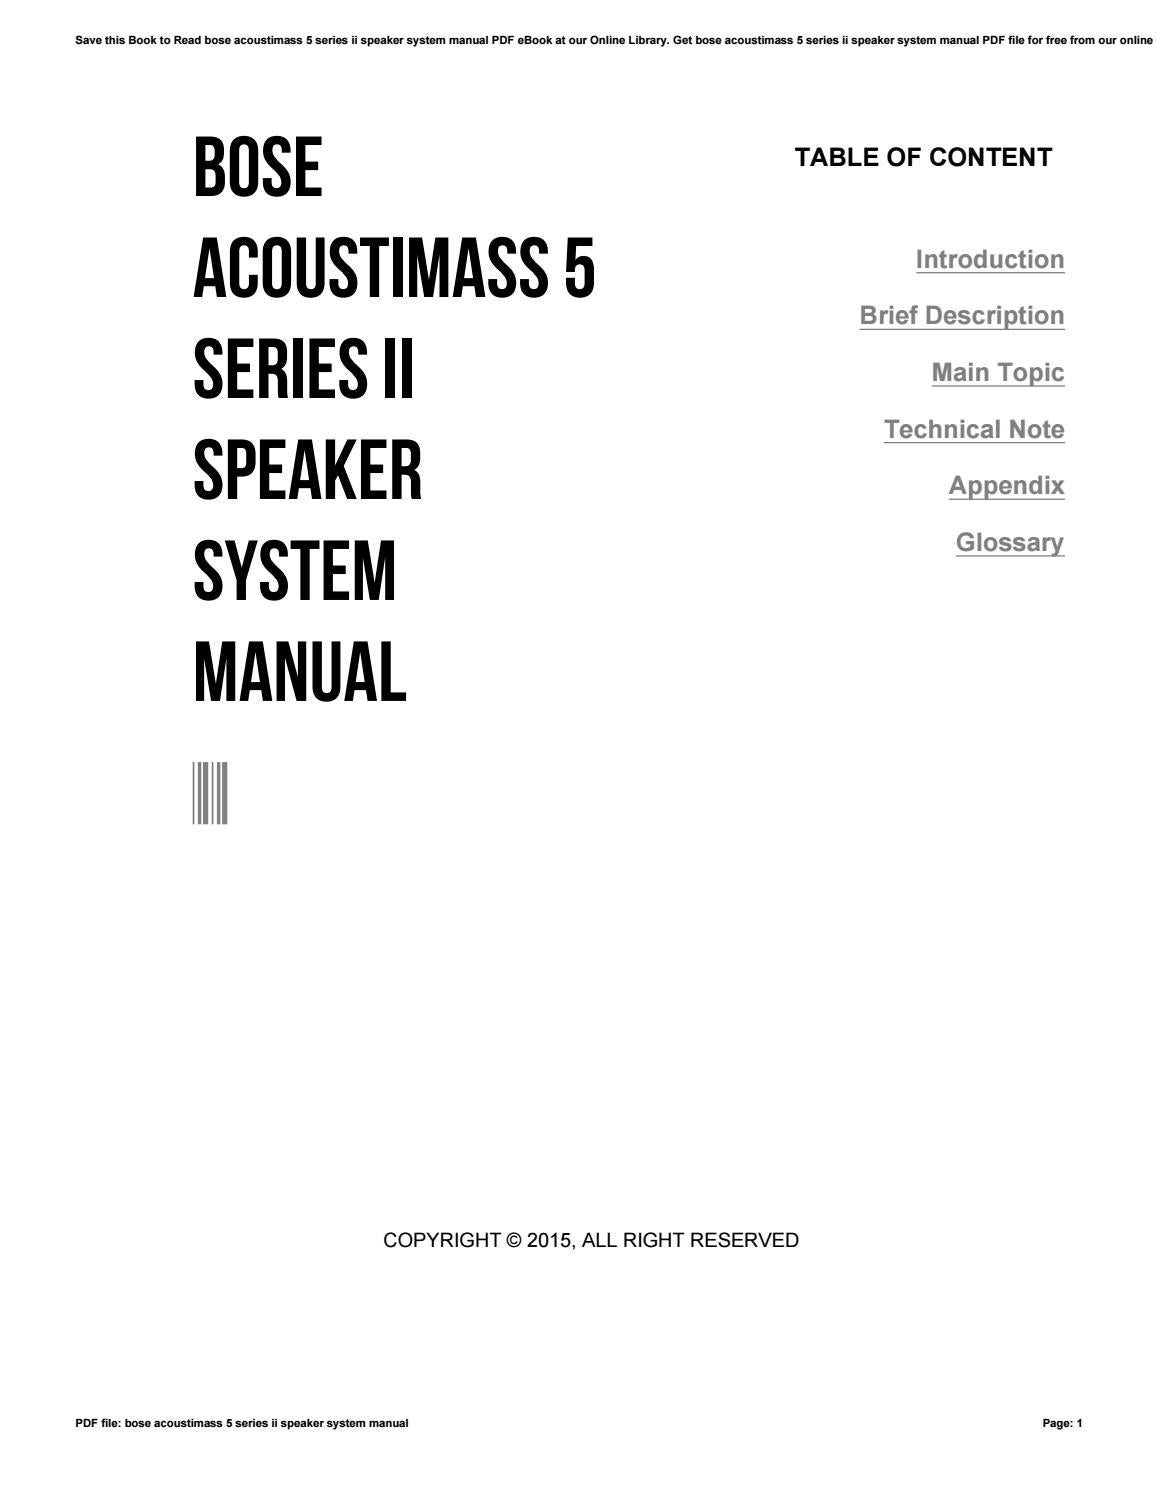 Bose acoustimass 5 series ii speaker system manual by ty11